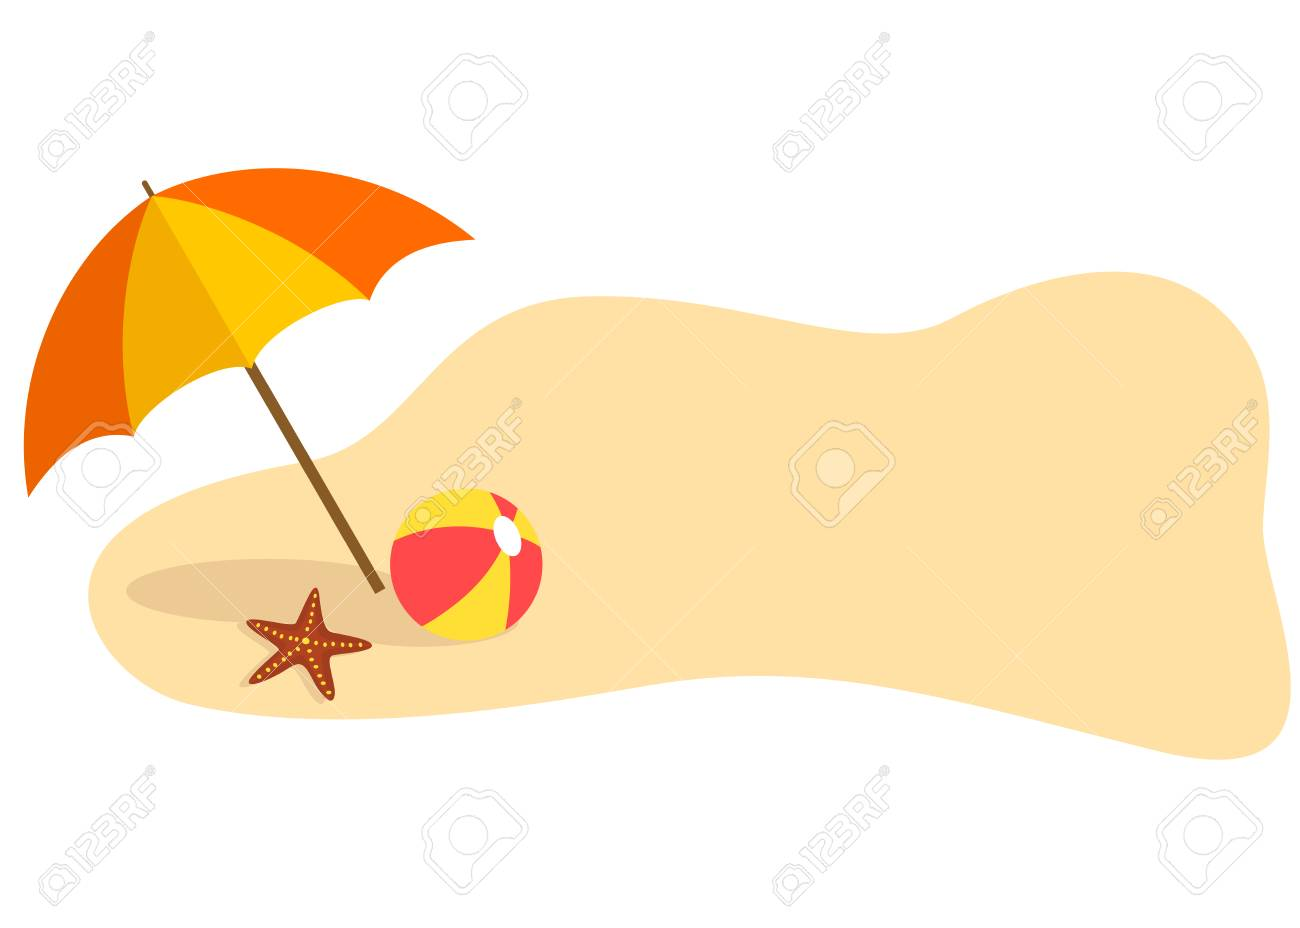 Summer beach themed banner with umbrella and ball.